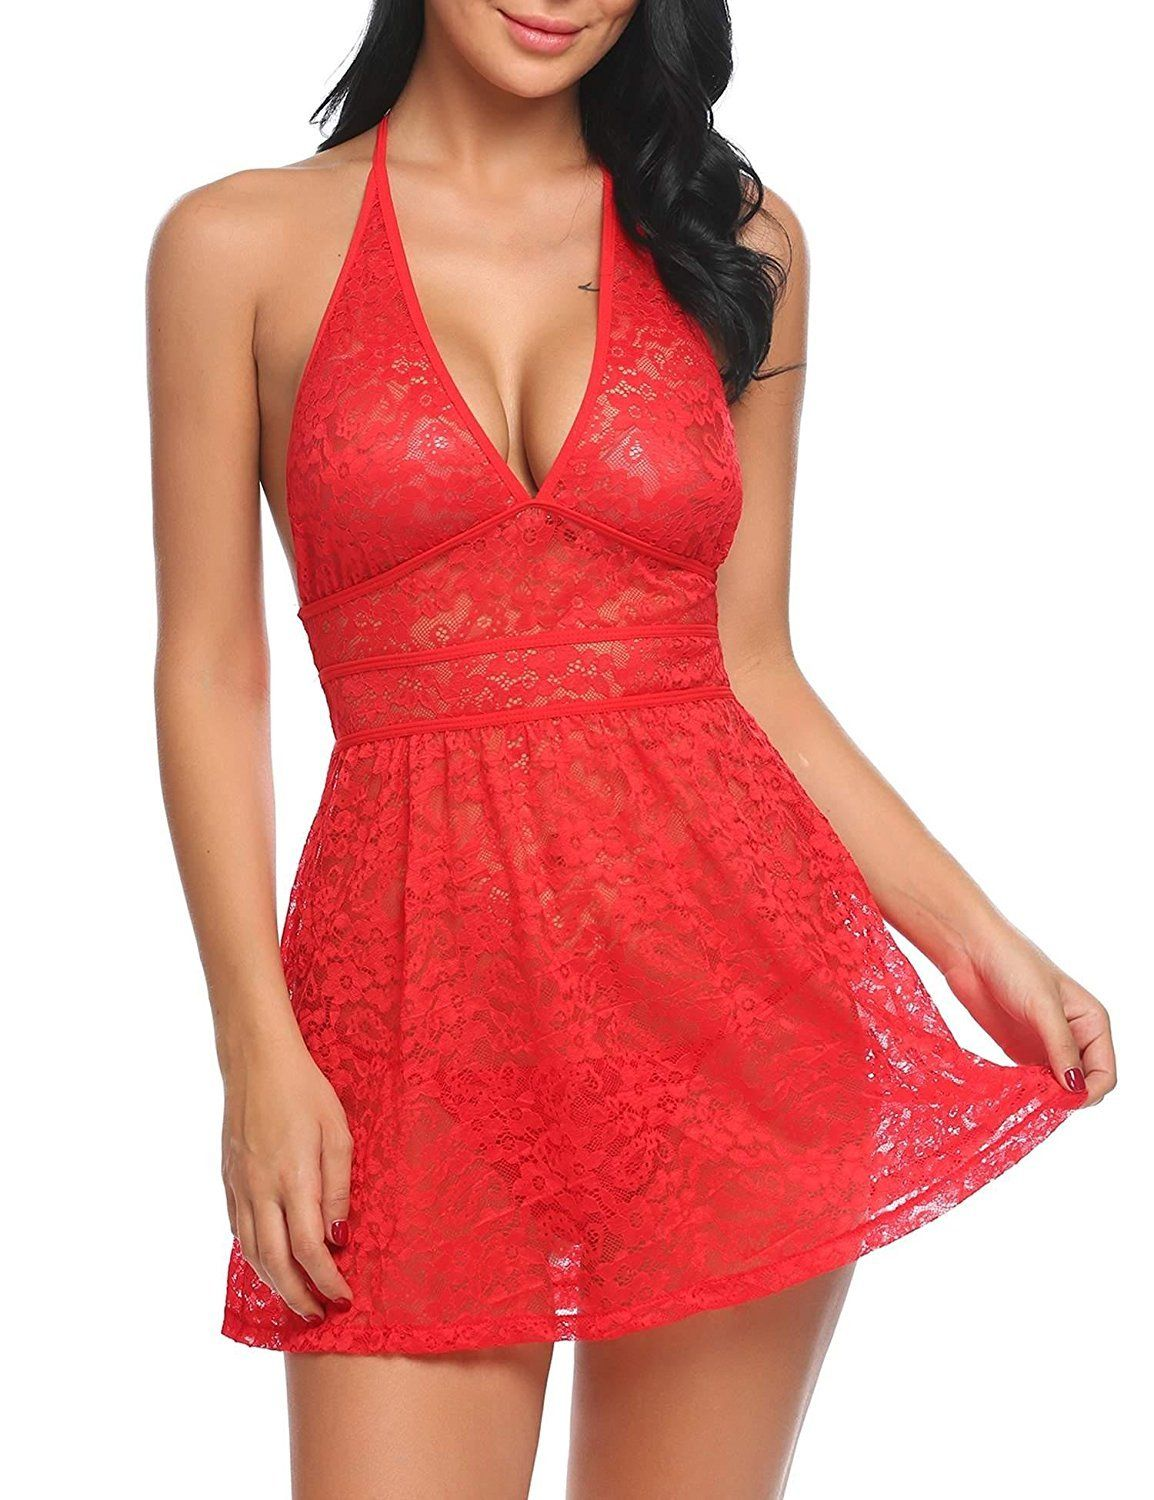 dc059c39f2 HOT Women V-Neck Lingerie Lace Babydoll Halter Floral Nightie Dress